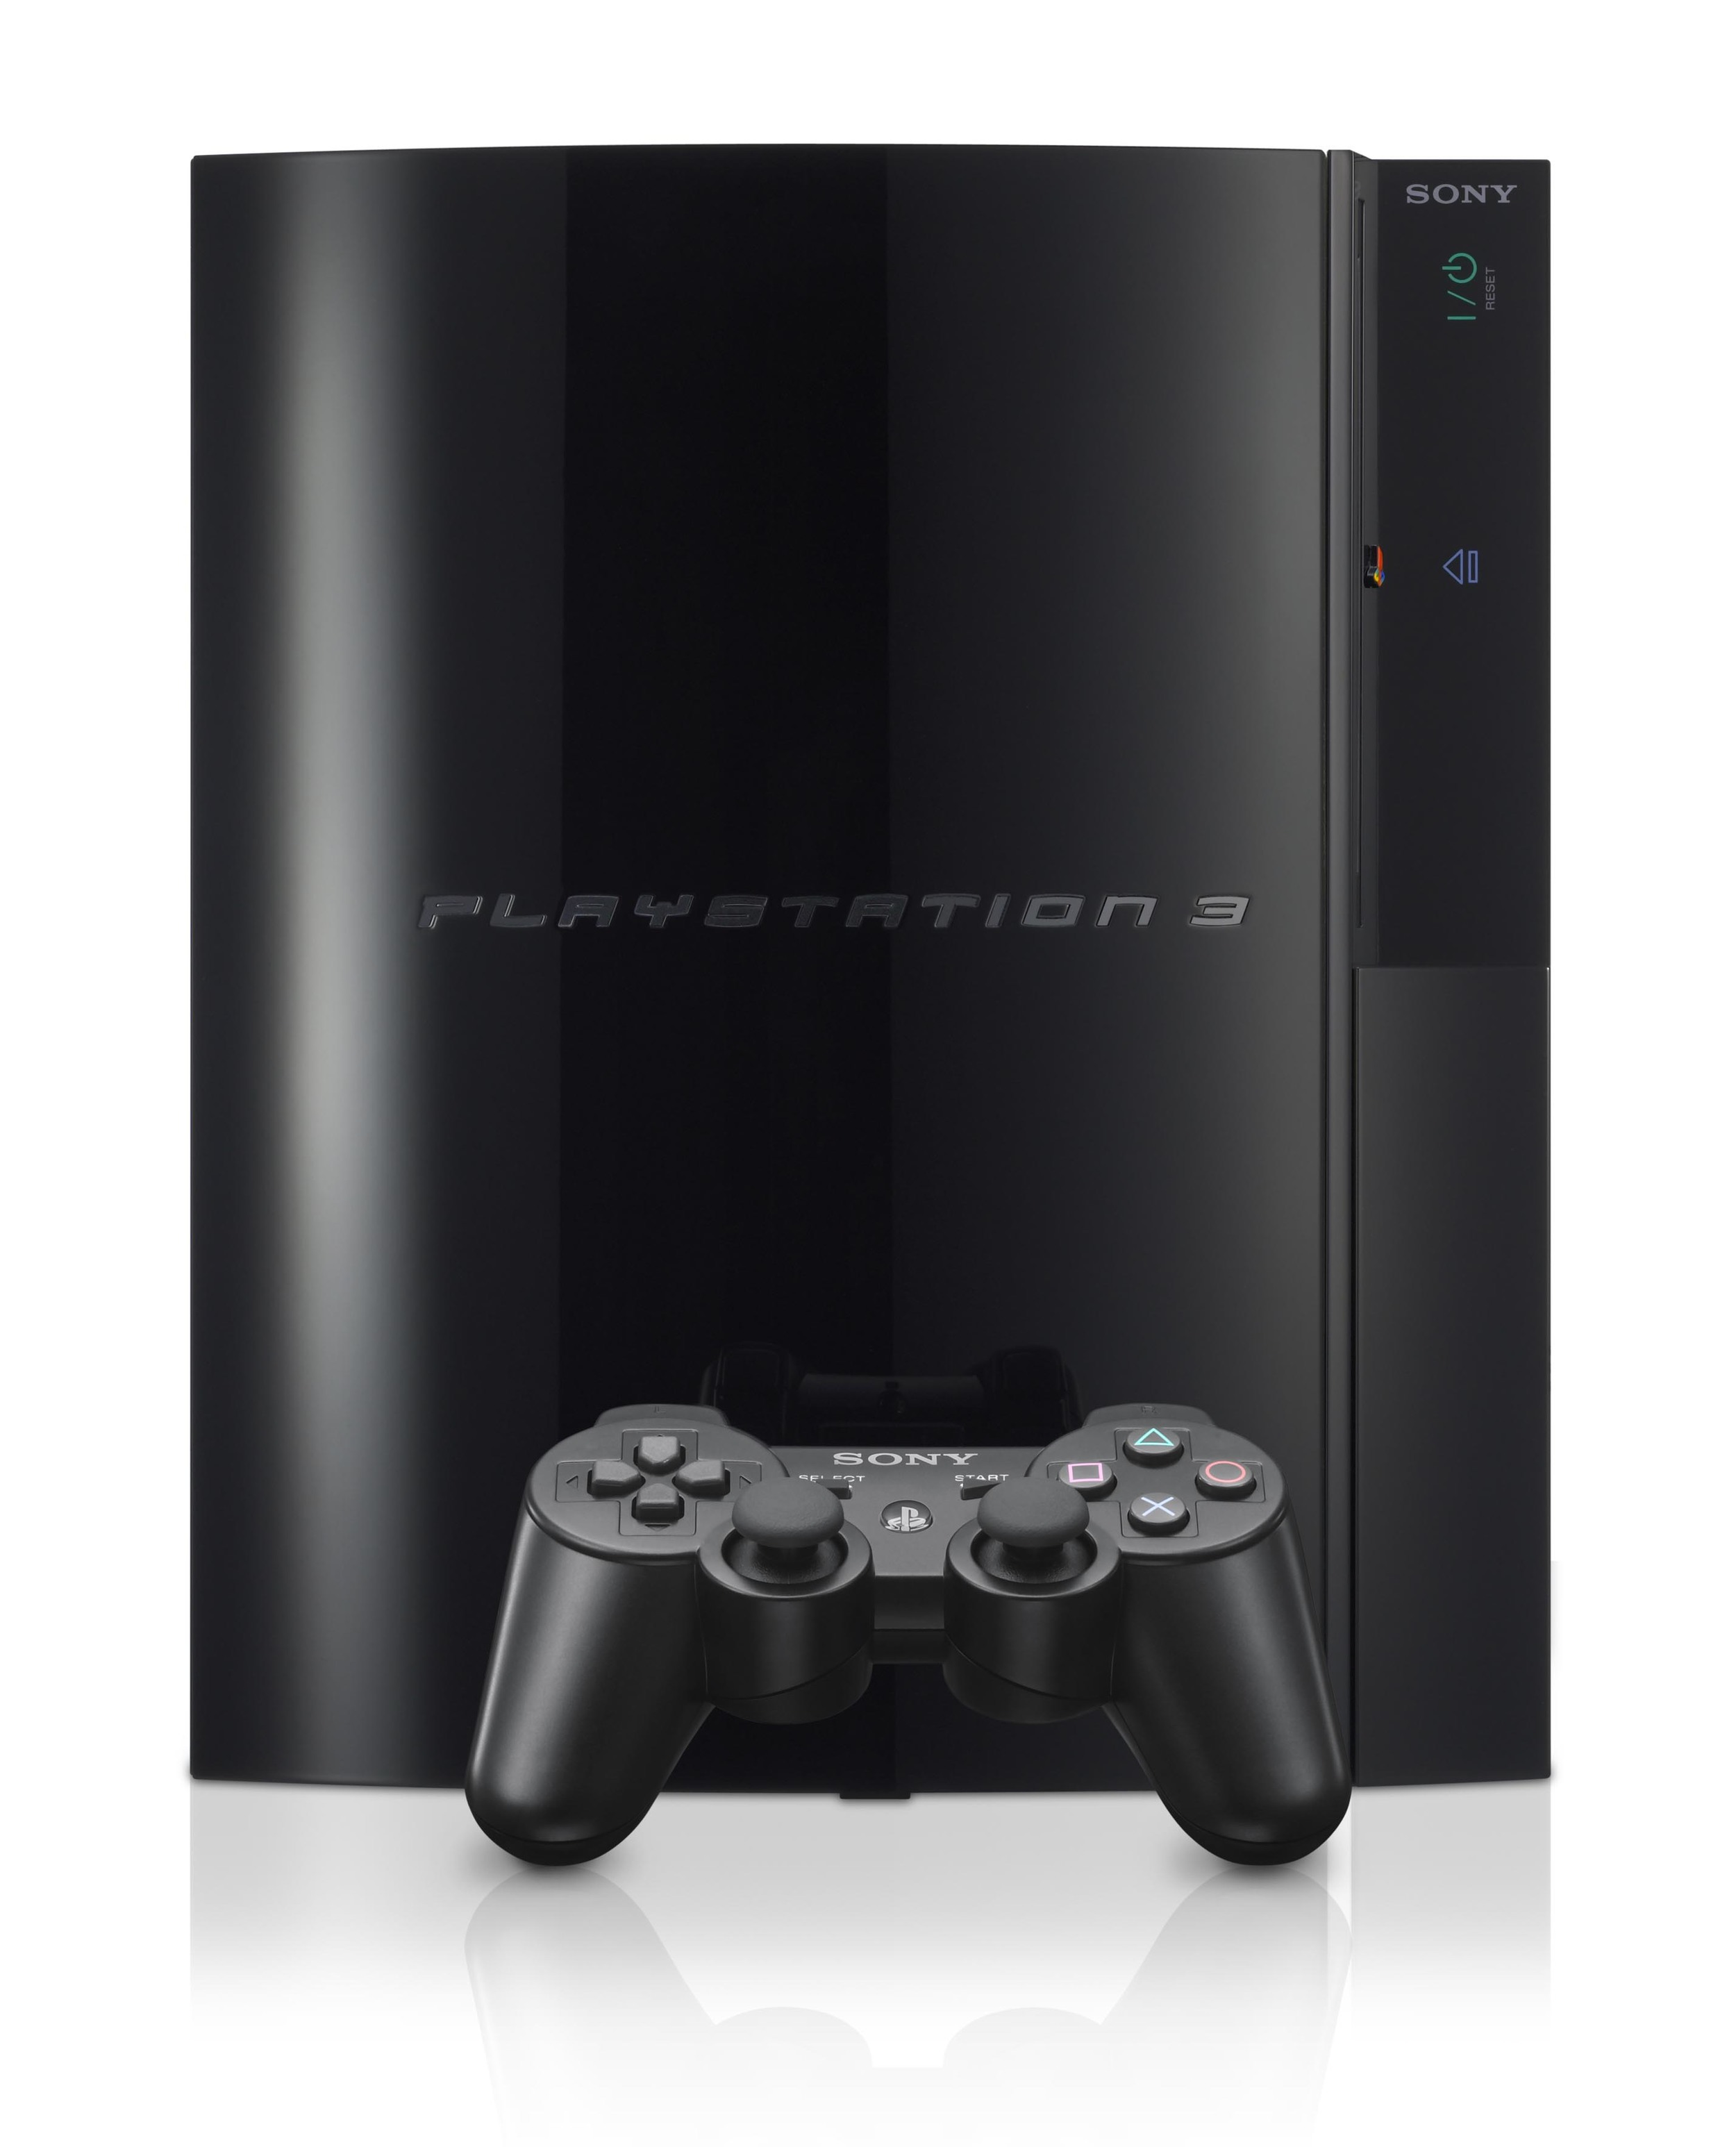 PS3 Front.jpg